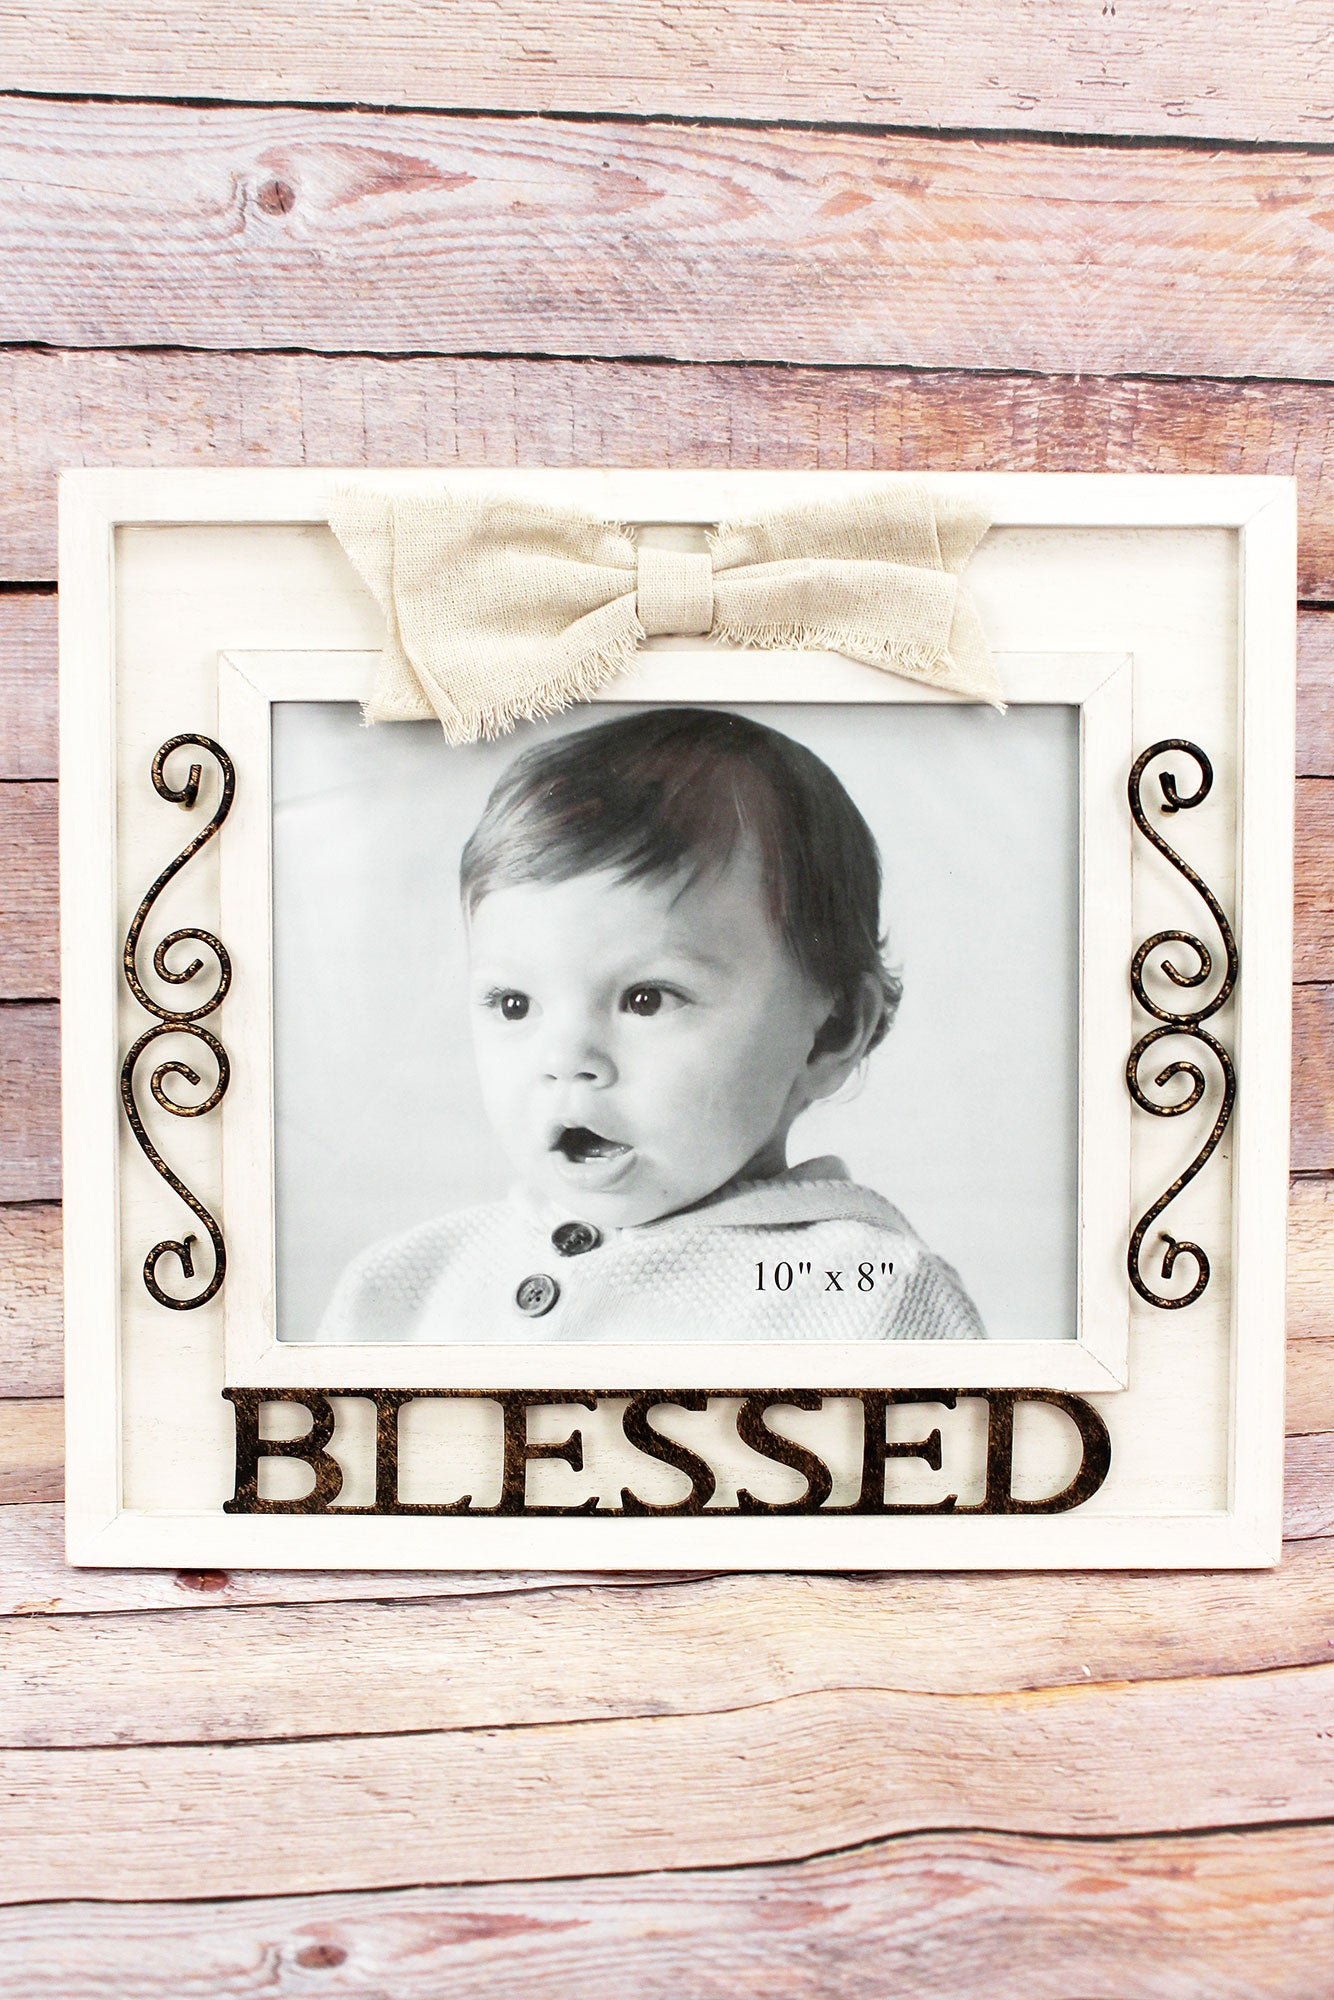 13 x 14.5 Metal \'Blessed\' Wood 8x10 Photo Frame with Bow | eWAM